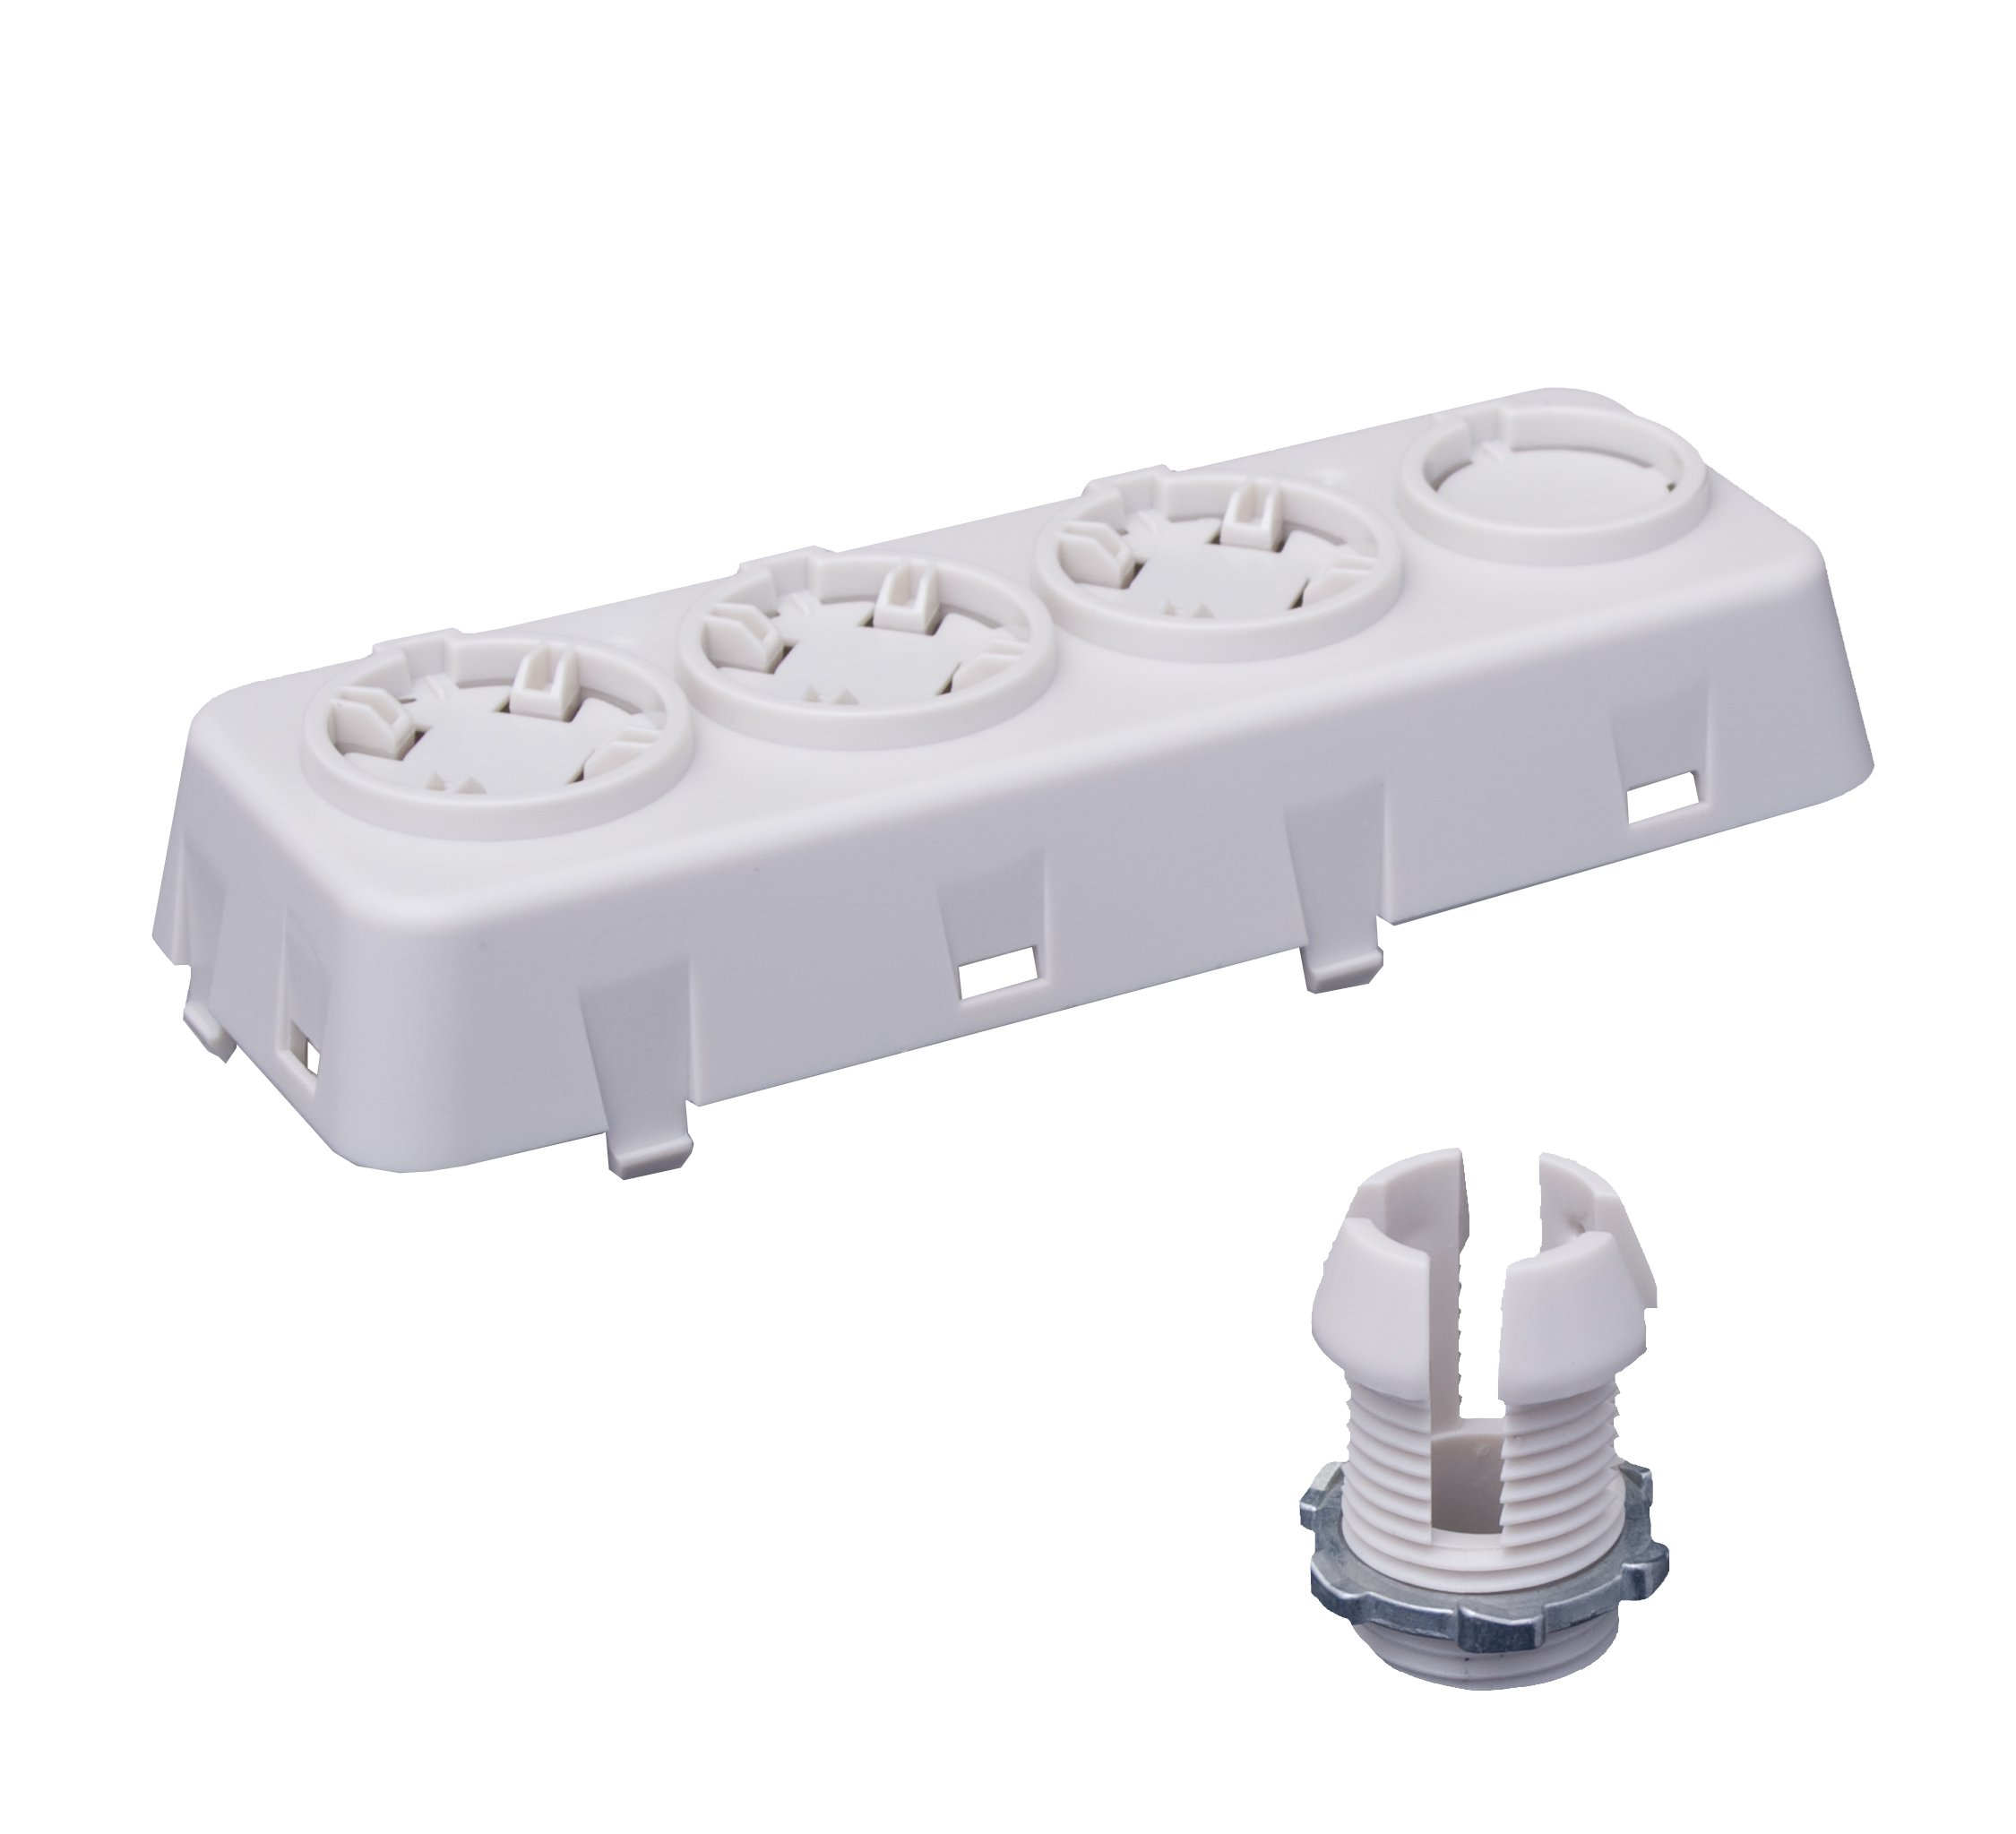 Leviton OSFOA-W Fixture-Mounted Offset Adapter Accessory for OSFHU, 3 Position, White